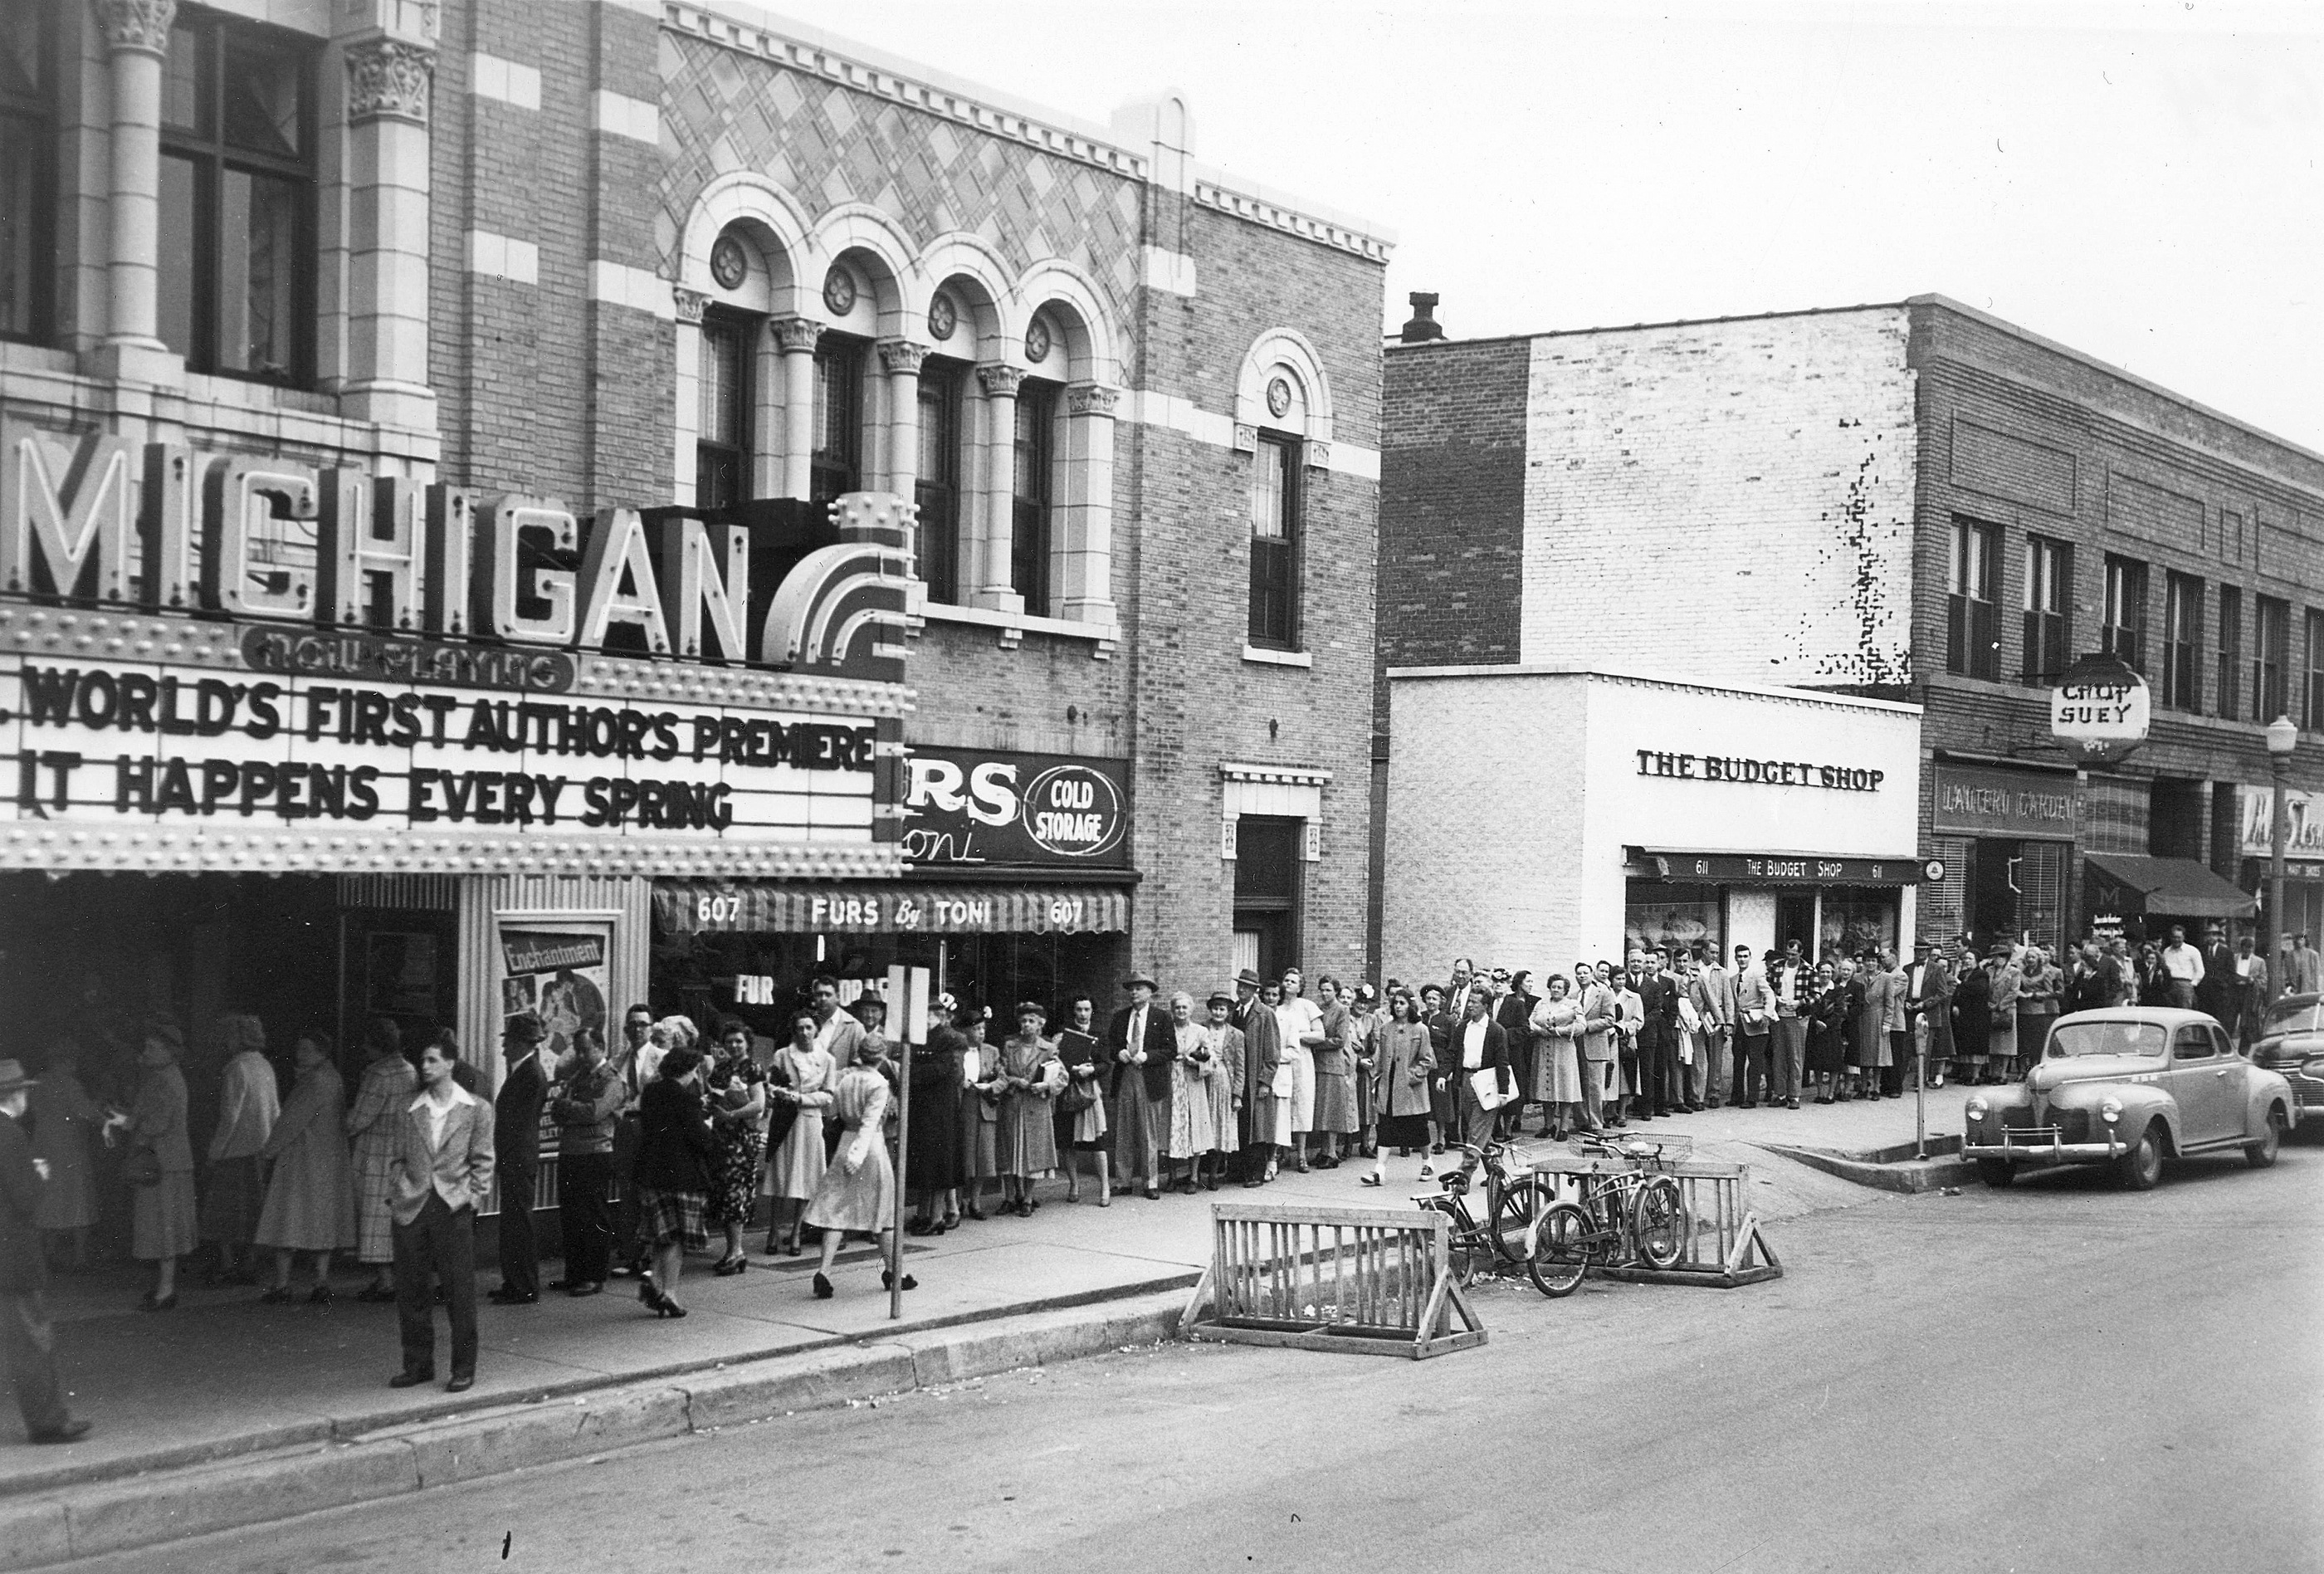 Moviegoers lined up at the Michigan Theater, 1949 image